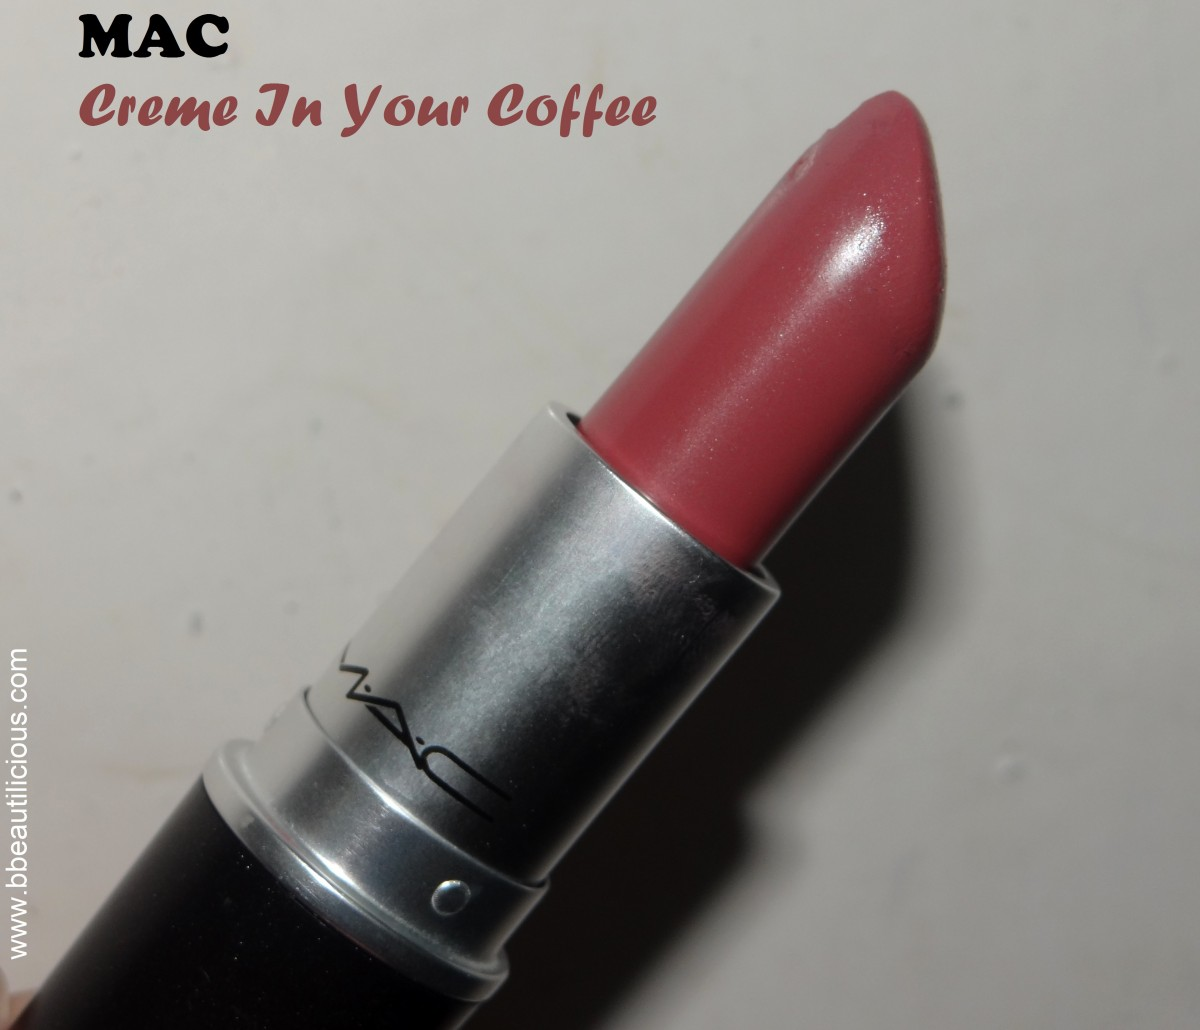 MAC Creme in your coffee